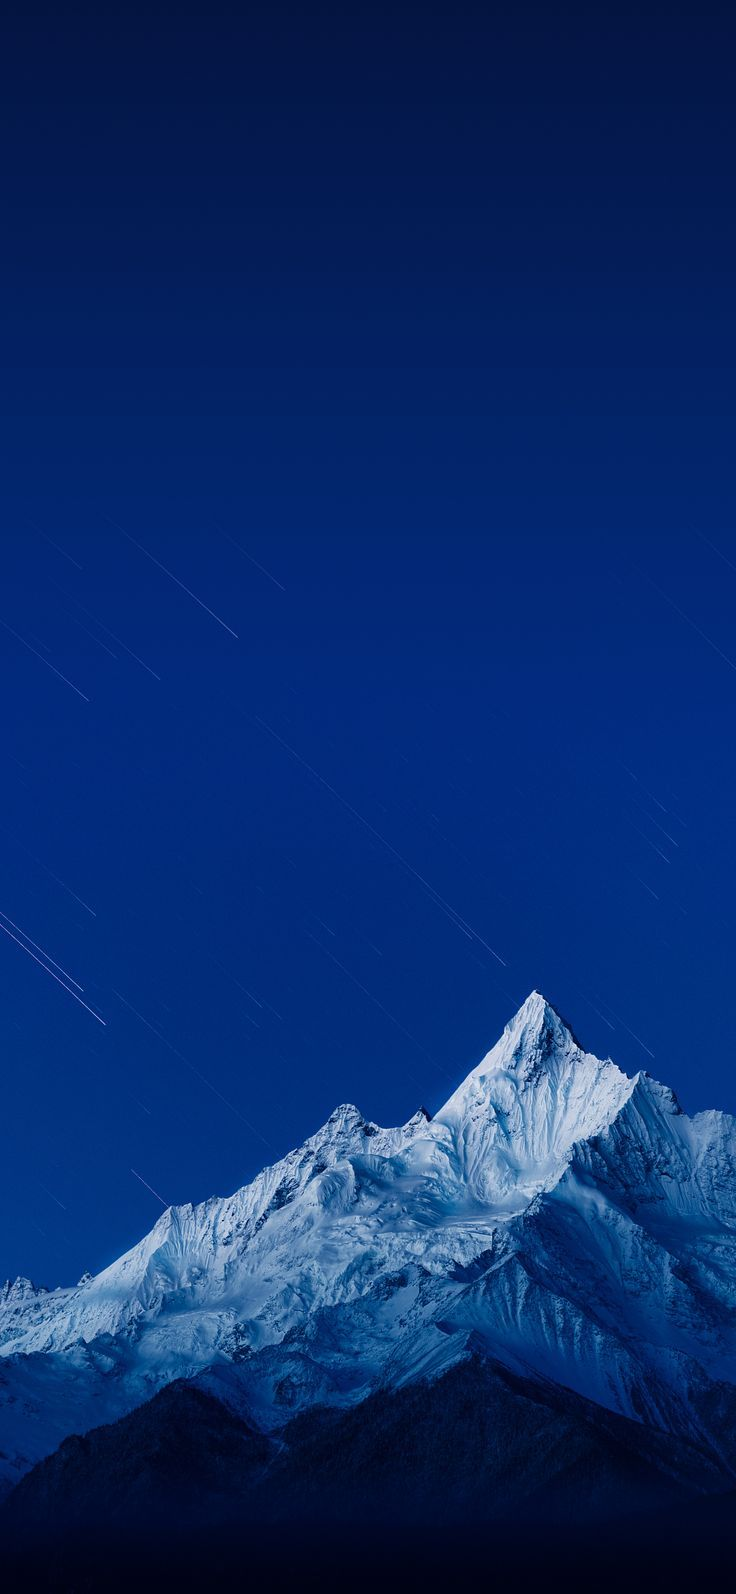 Sky Blue And Snow Mountain Wallpaper Background Sky Blue Mountain Snow Wall 4k Blue Wallpaper Iphone Android Phone Wallpaper Samsung Wallpaper